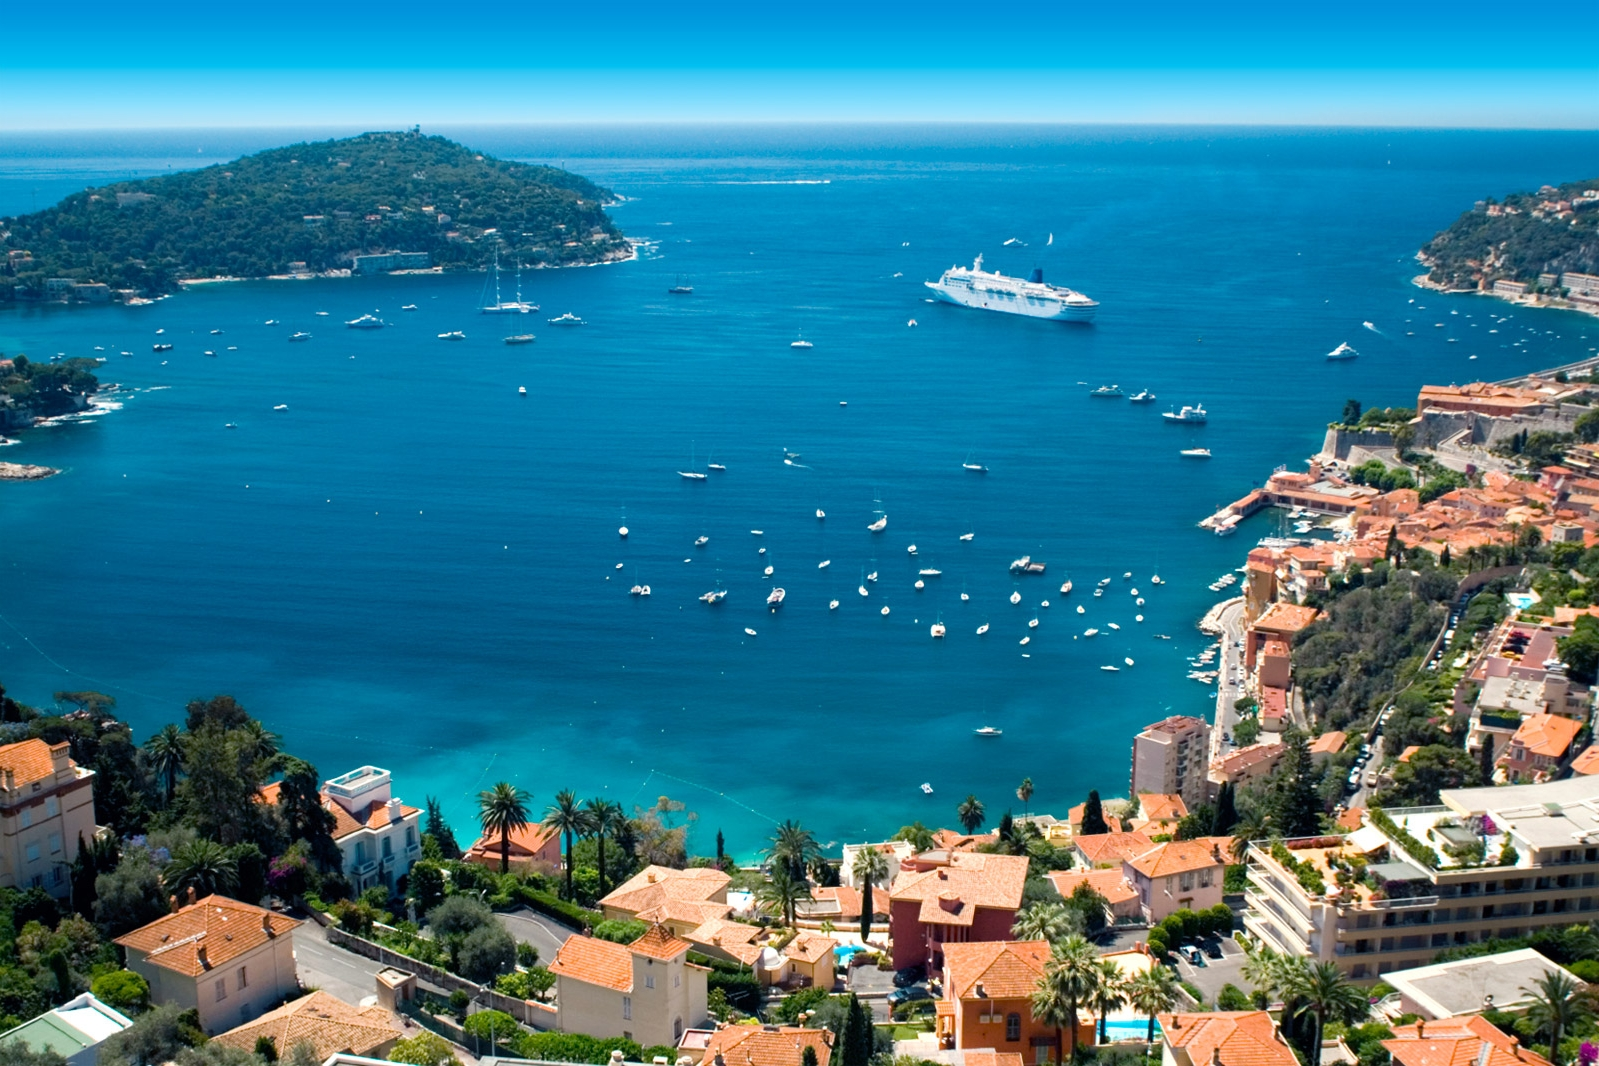 UY_French Riviera_01.jpg